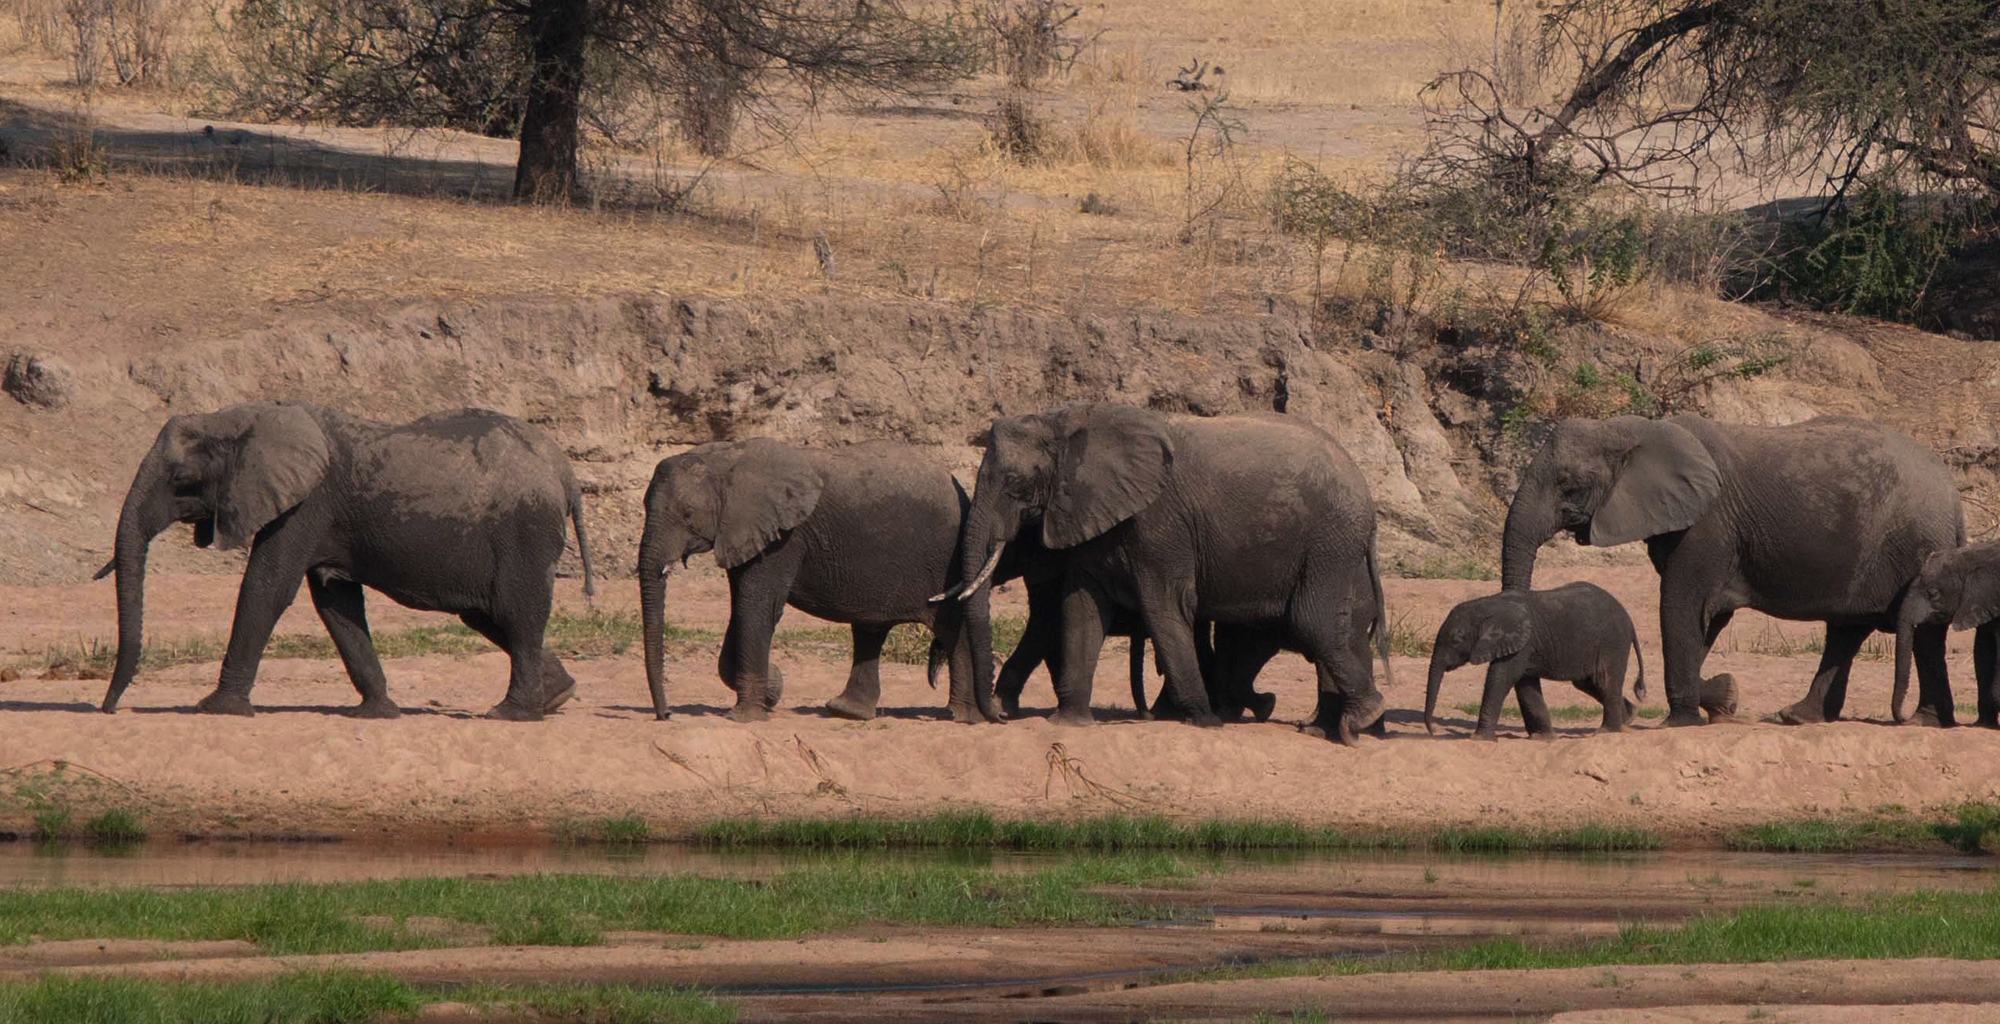 Tanzania-Ruaha-National-Park-Elephants